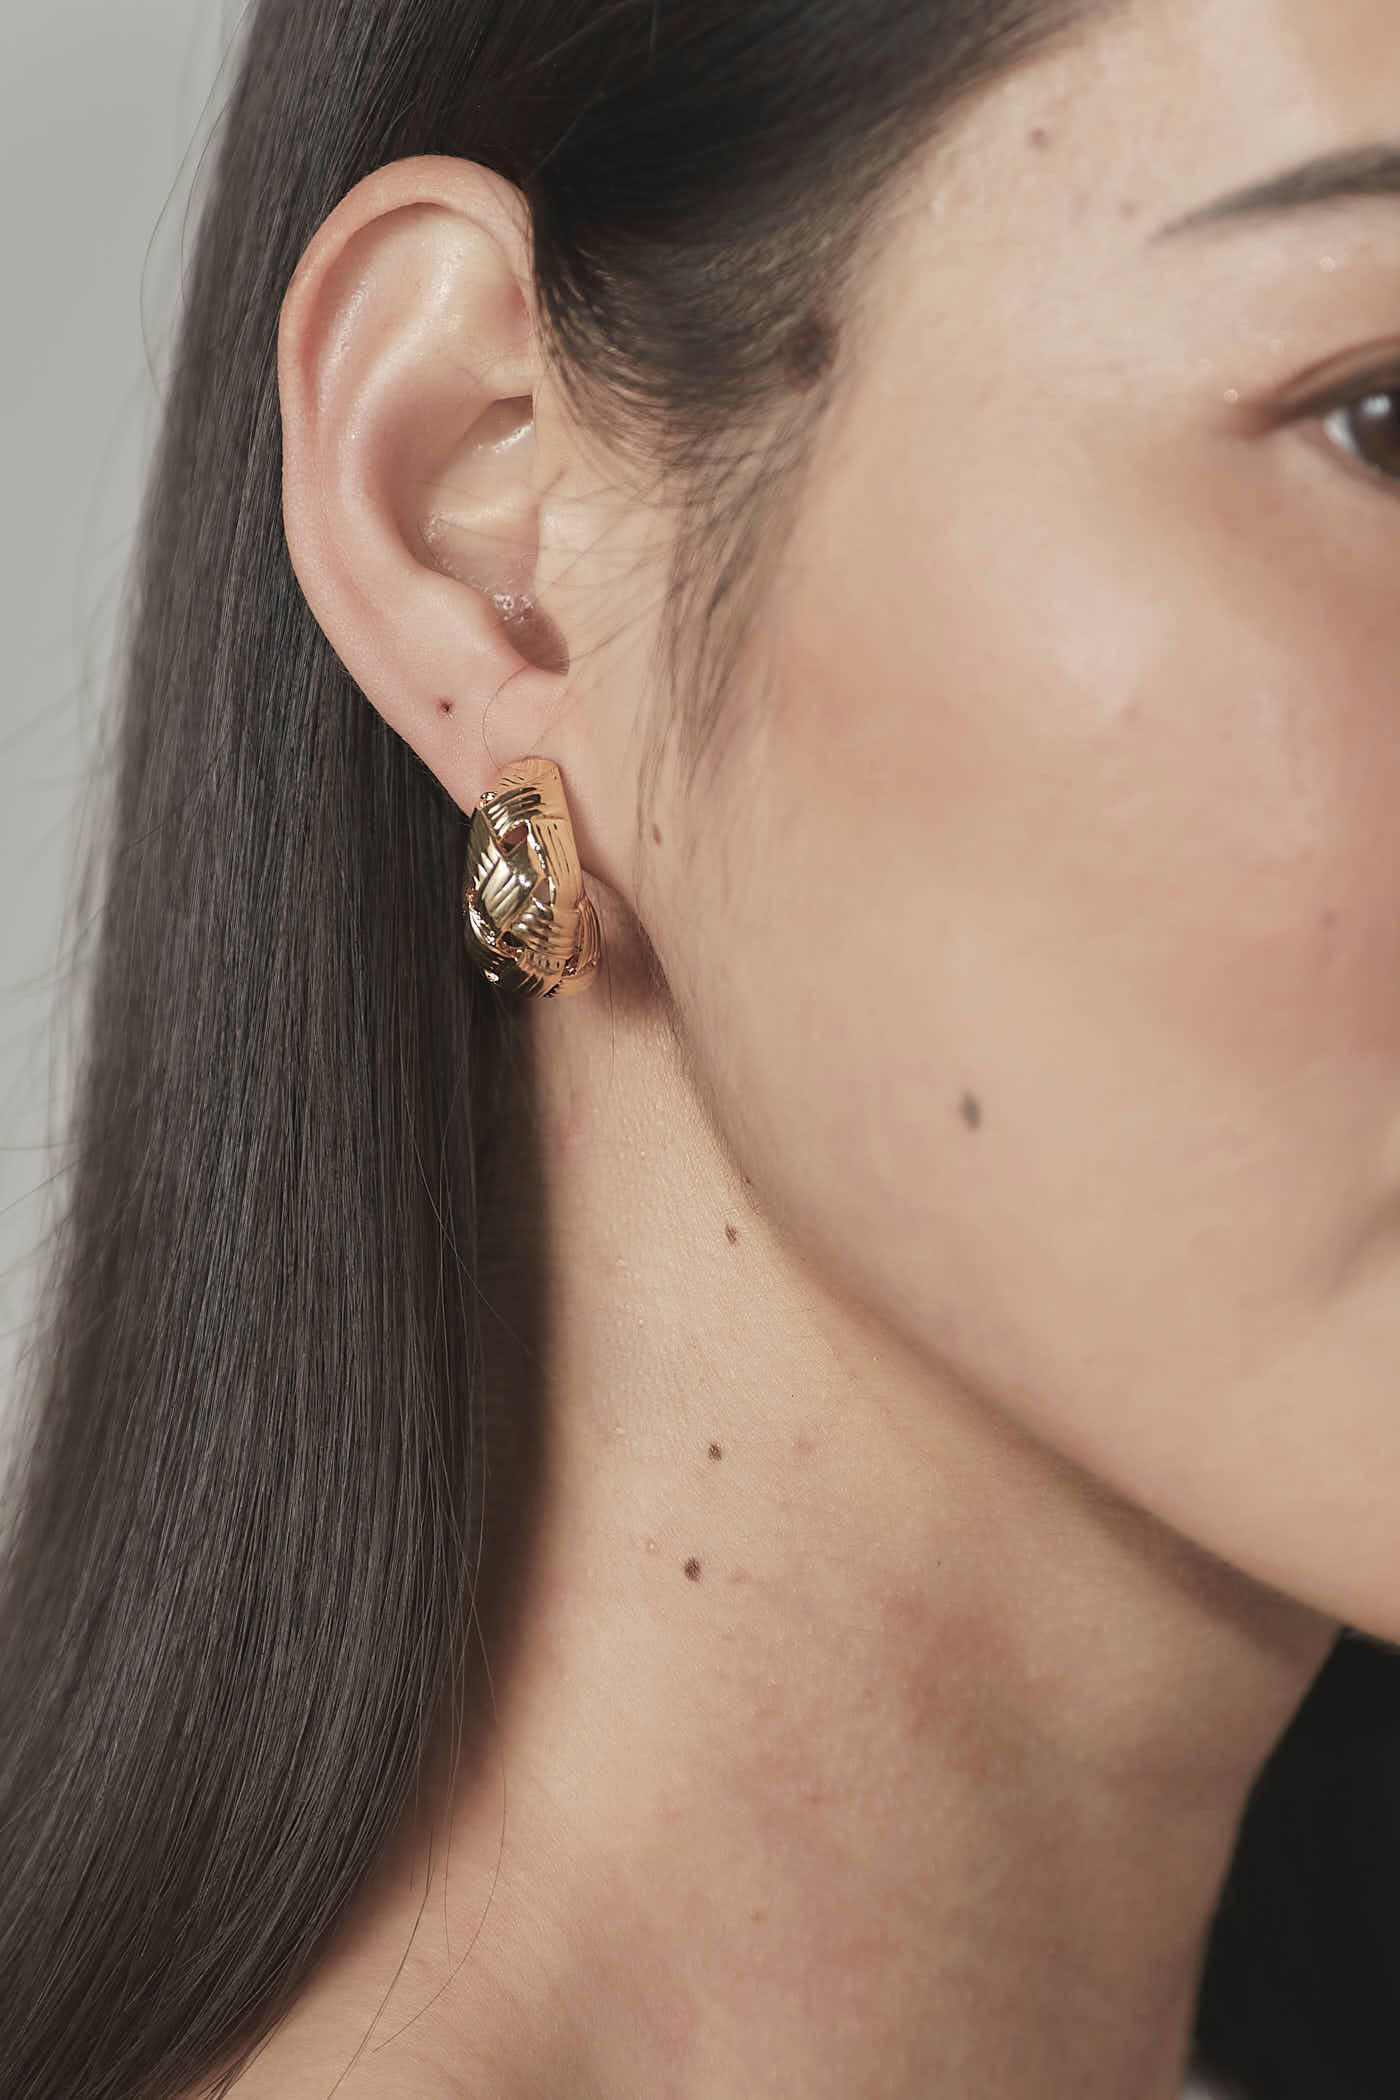 Solane Earrings